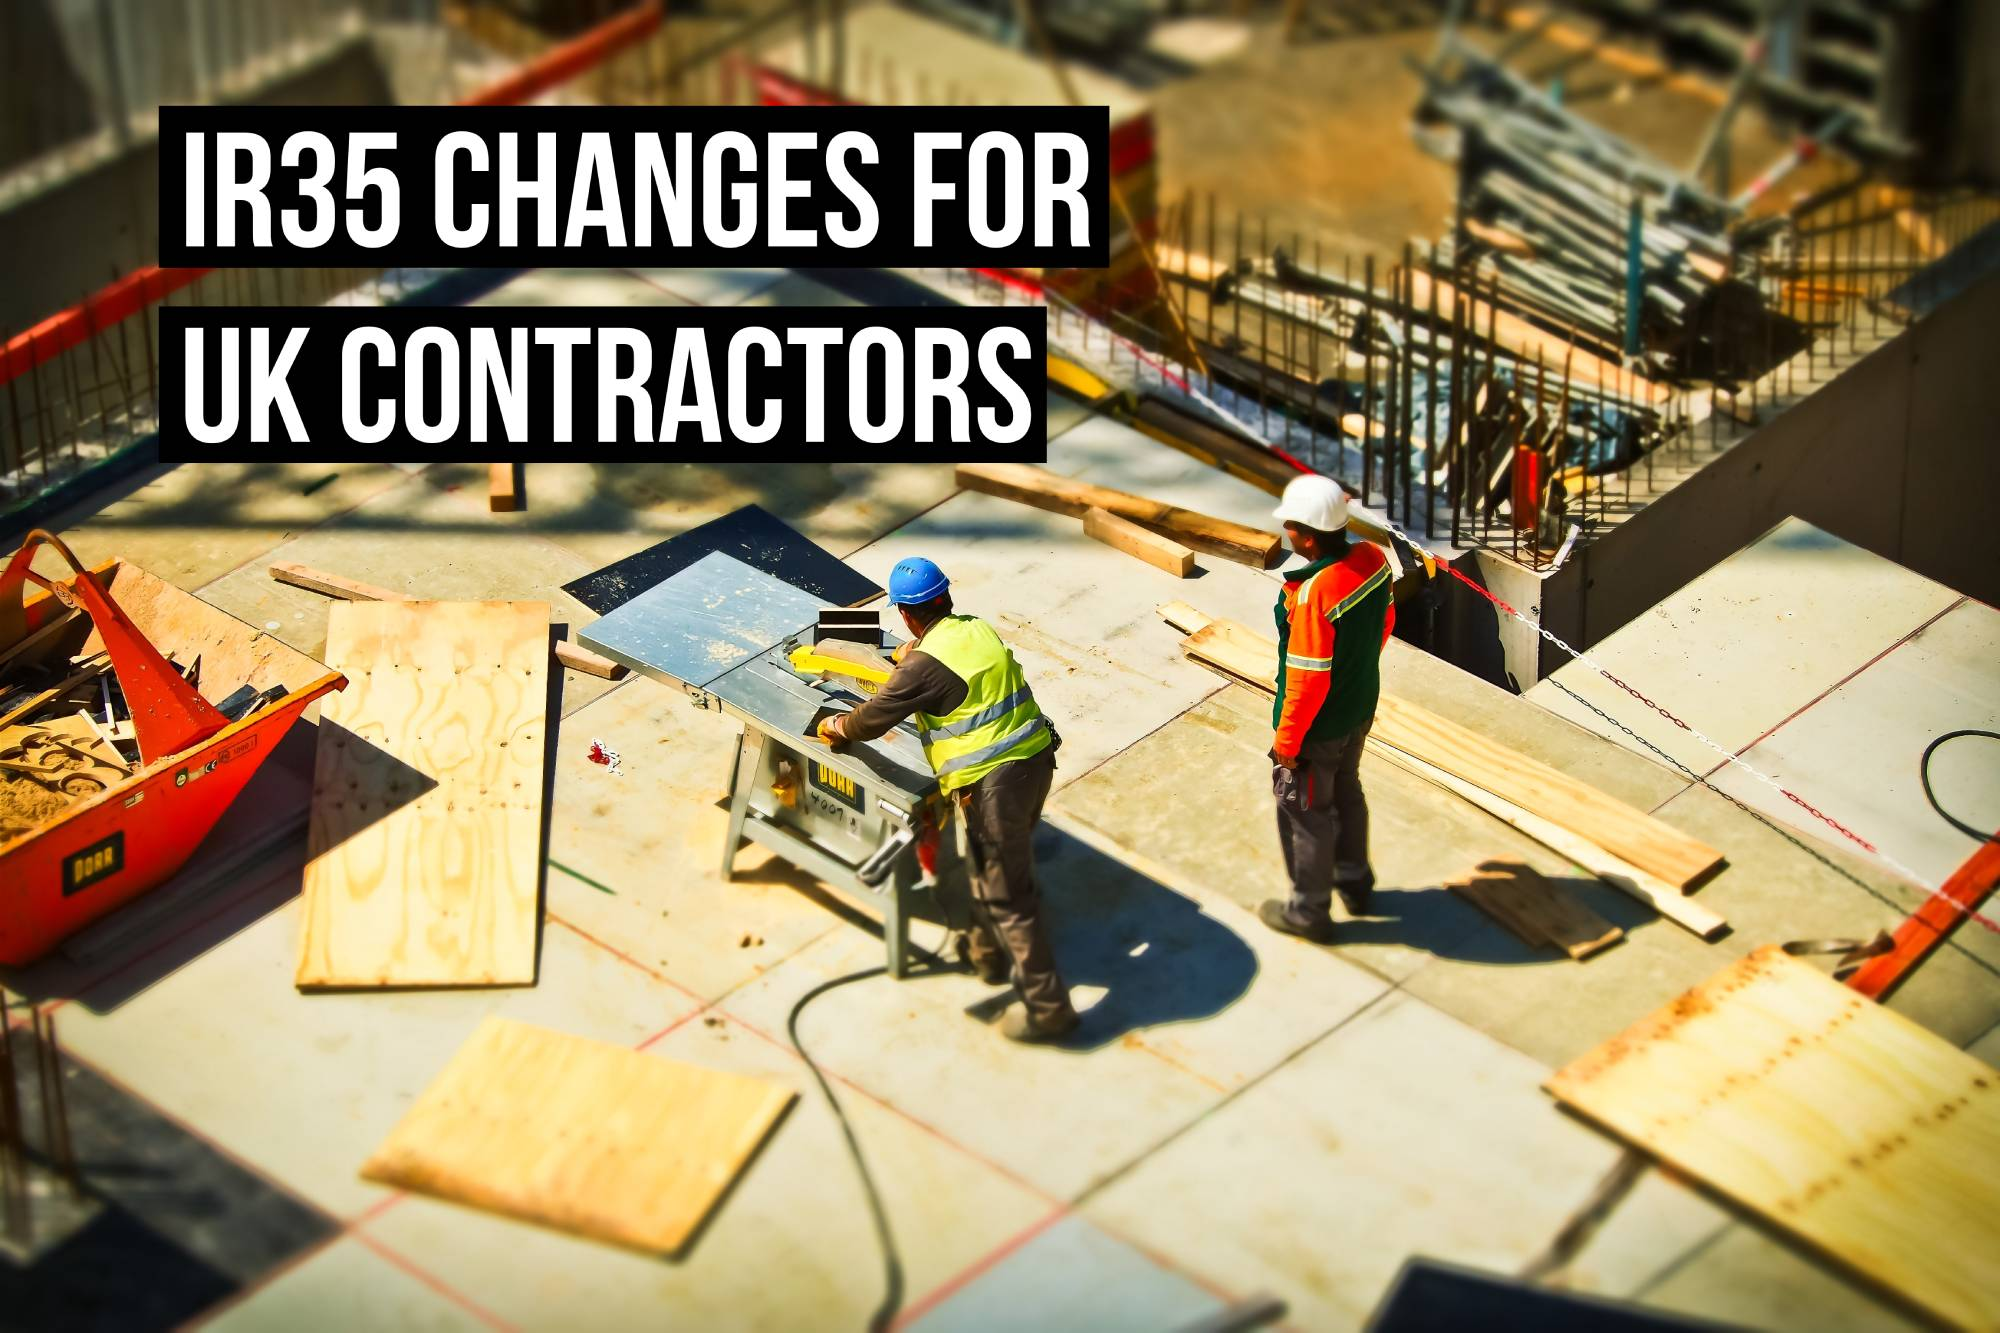 ir35 changes for uk contractors image